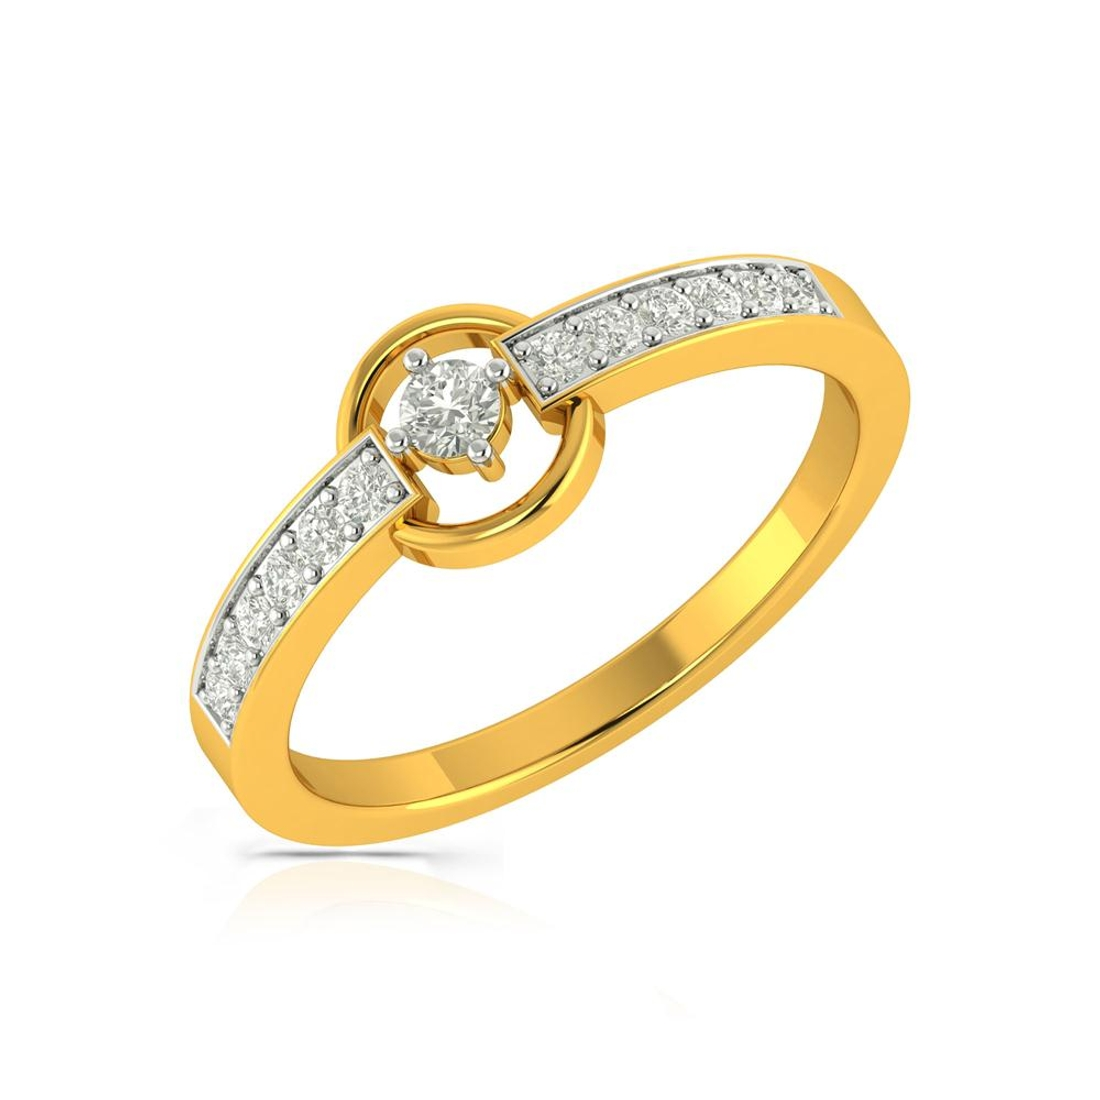 Buy Charu Jewels Diamond Ladies Ring CJLR0454 Online in India